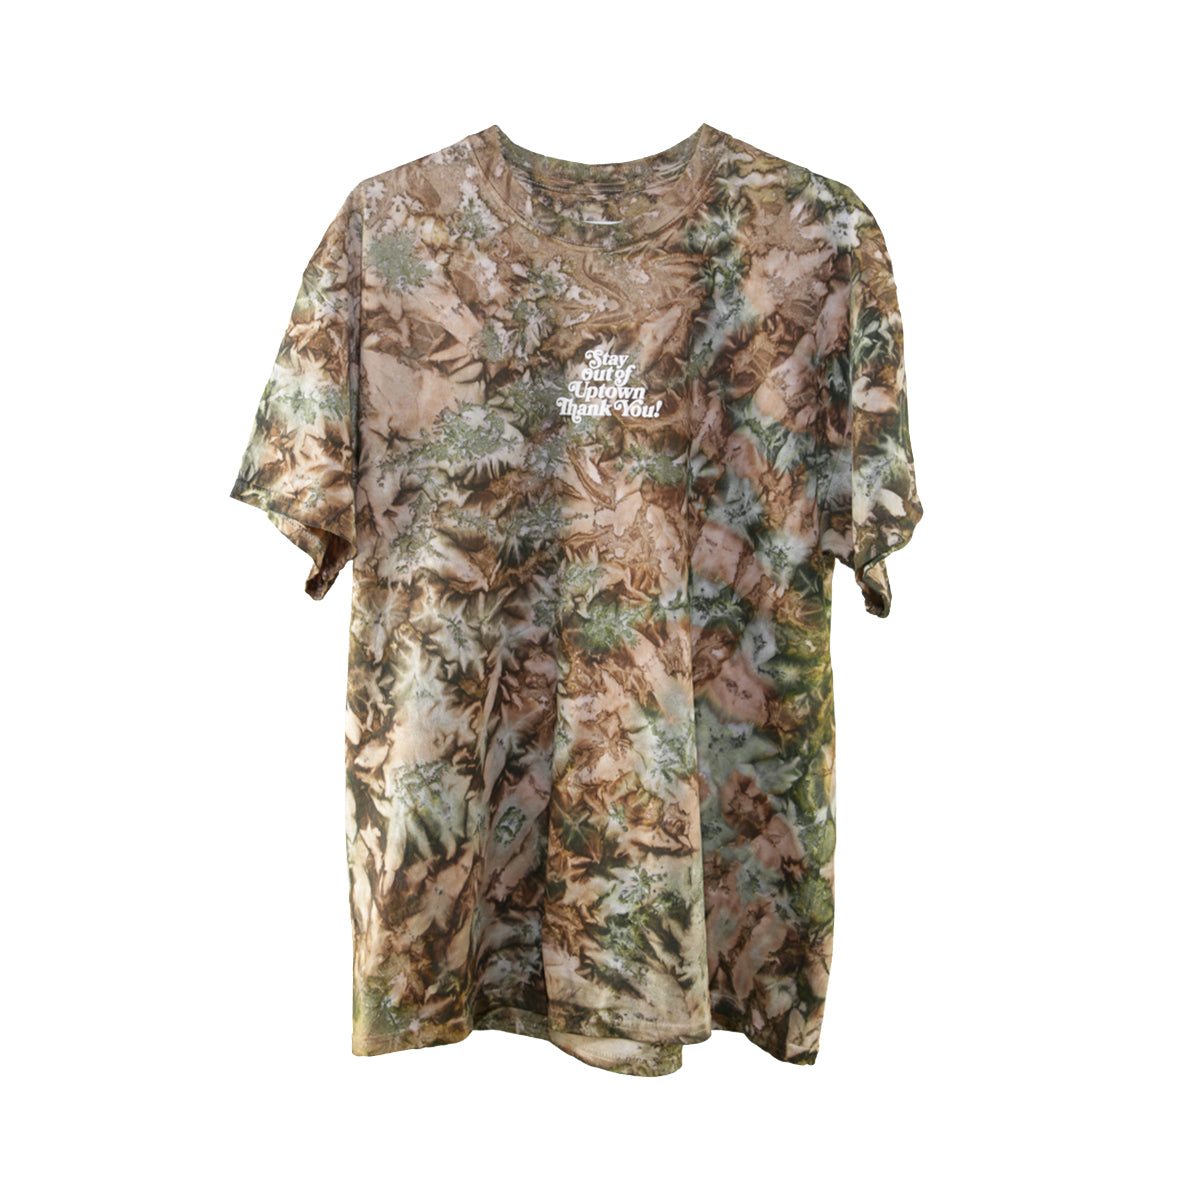 Stay Out of Uptown Tie Dye - Camo